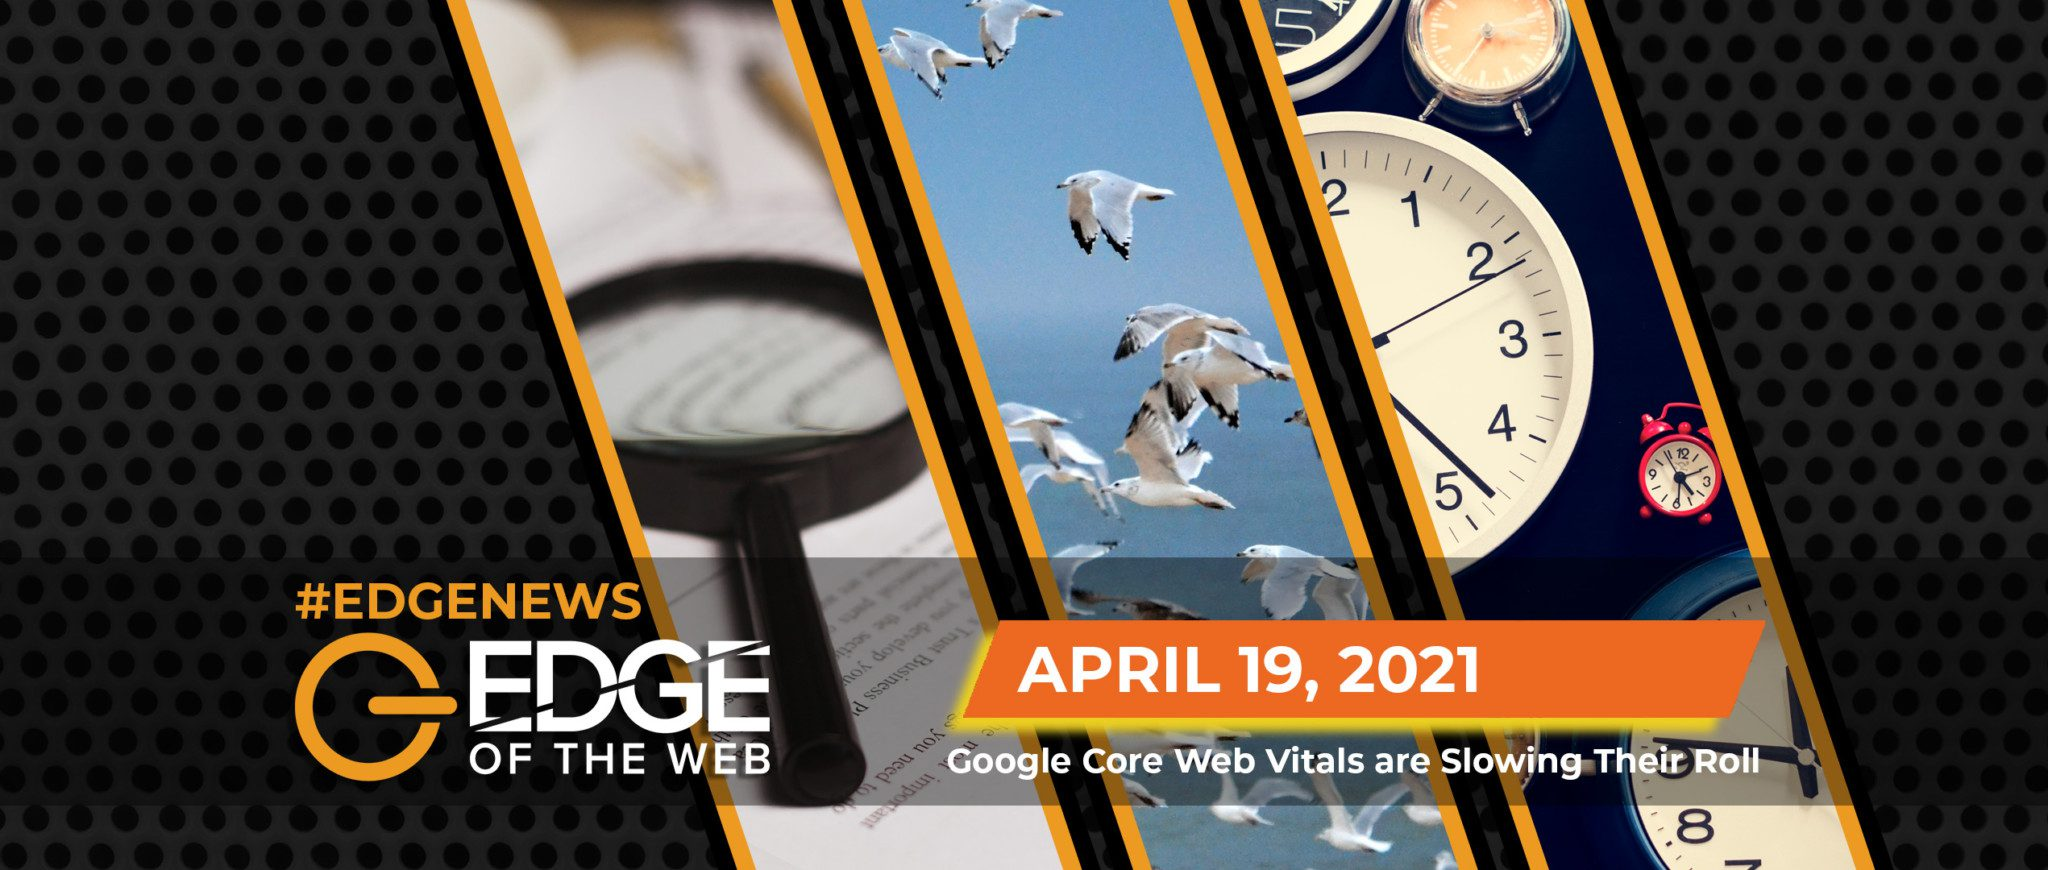 412 | News from the EDGE: Week of April 19, 2021